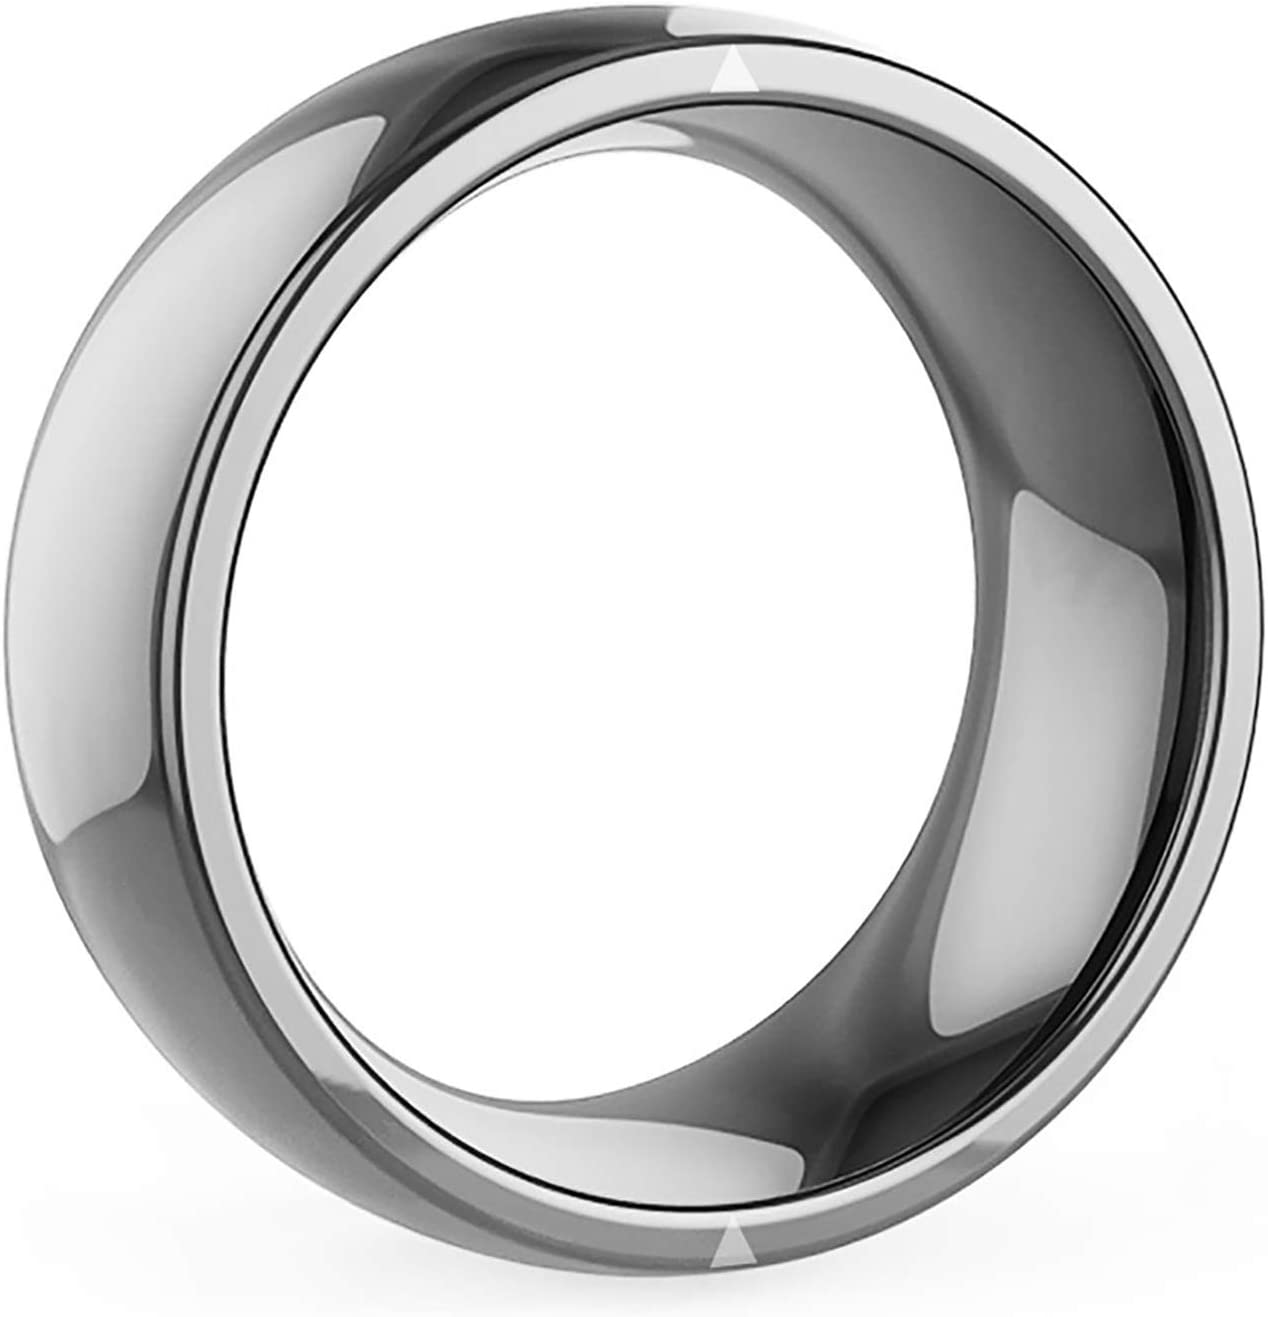 GTJXEY Multifunctional Smart NFC Ring, IP68 Waterproof Smart Finger Ring Digital Ring Creative and Useful for Android and iOS (Color : Size11)